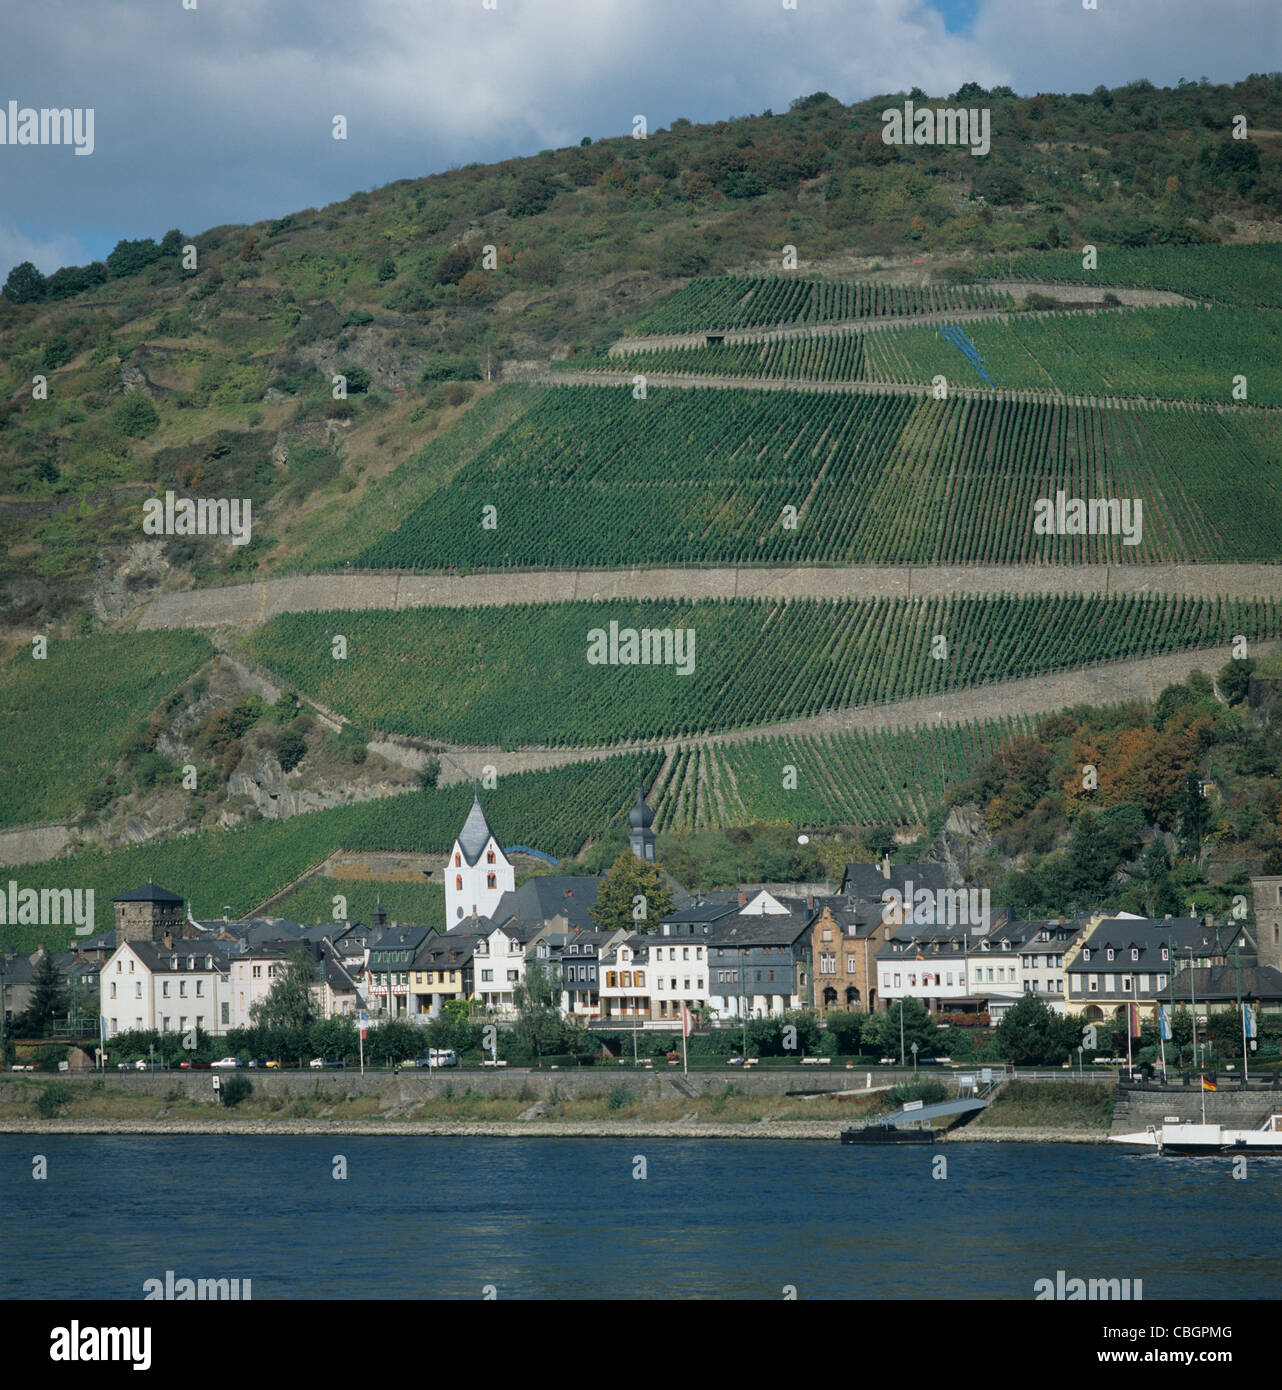 Vineyards above the village of Kaub in the Rhine Valley, Germany - Stock Image